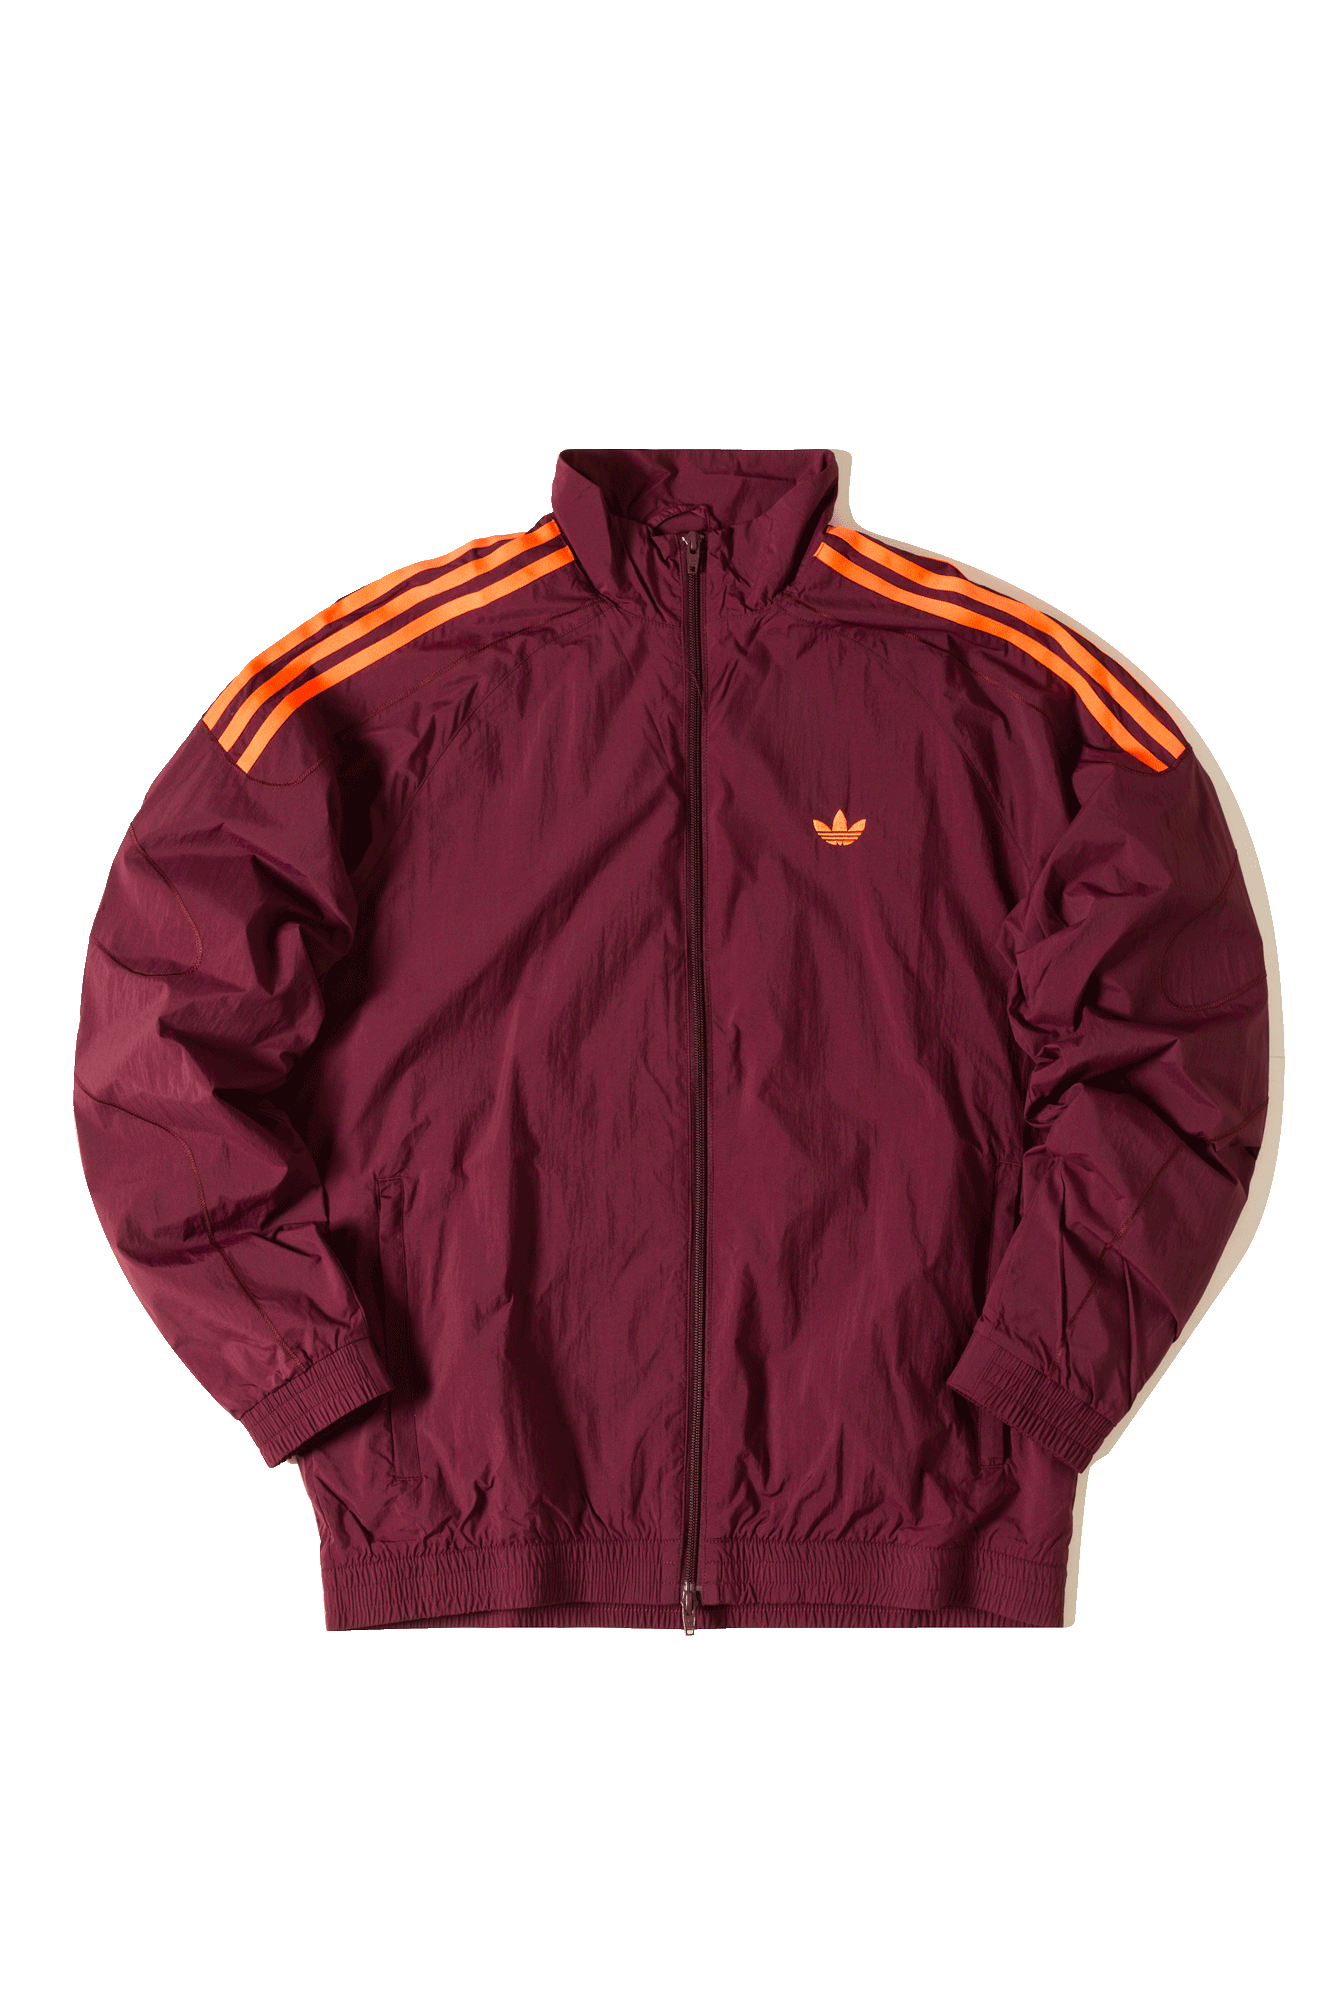 Adidas Originals Felpe Flamestrk Wv TT Rosso DU8132#000#C0012#S - One Block Down